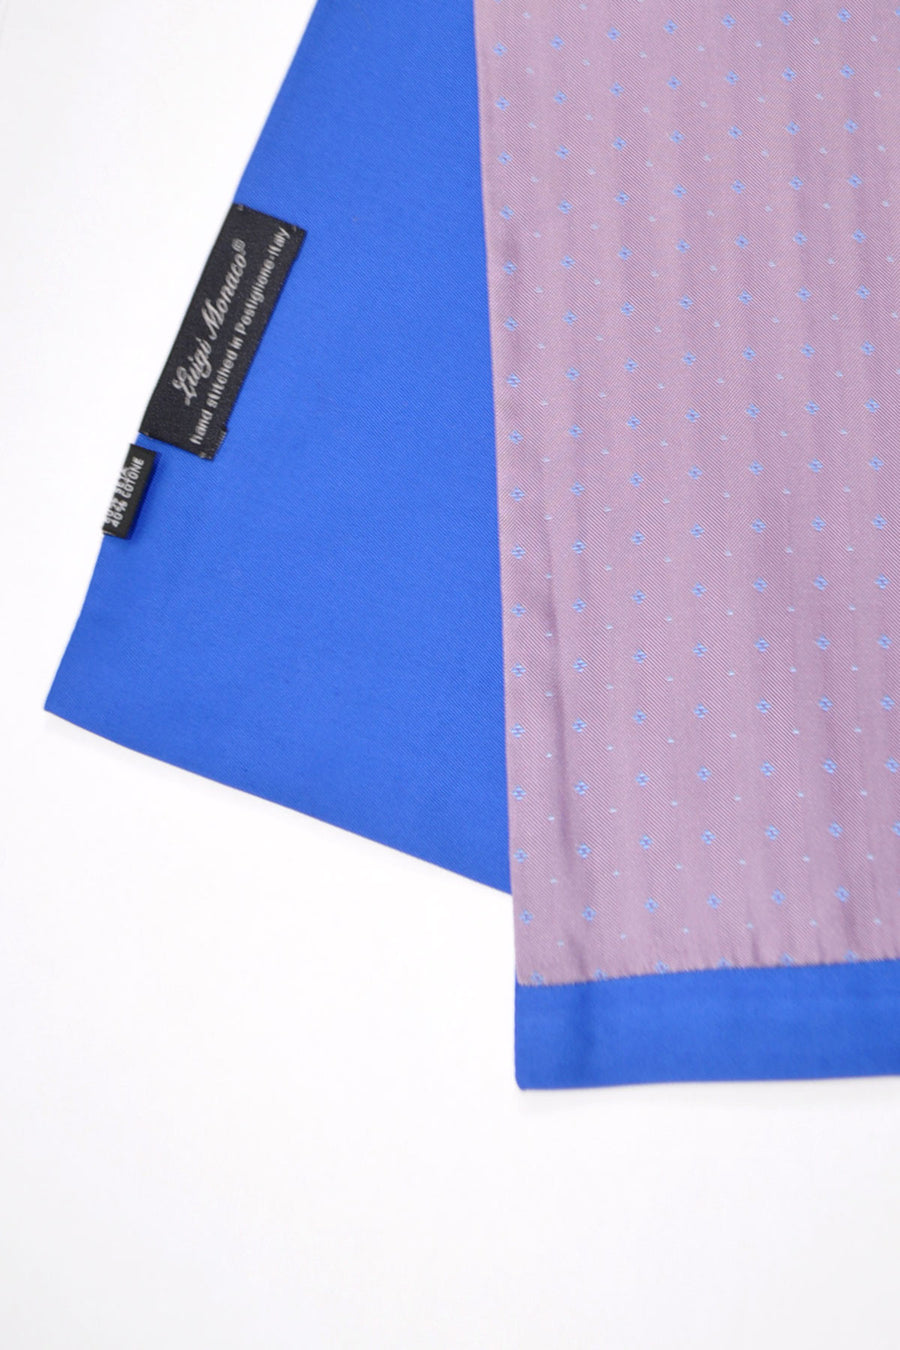 Luigi Monaco Scarf Lilac Royal Blue - Made in Italy SALE